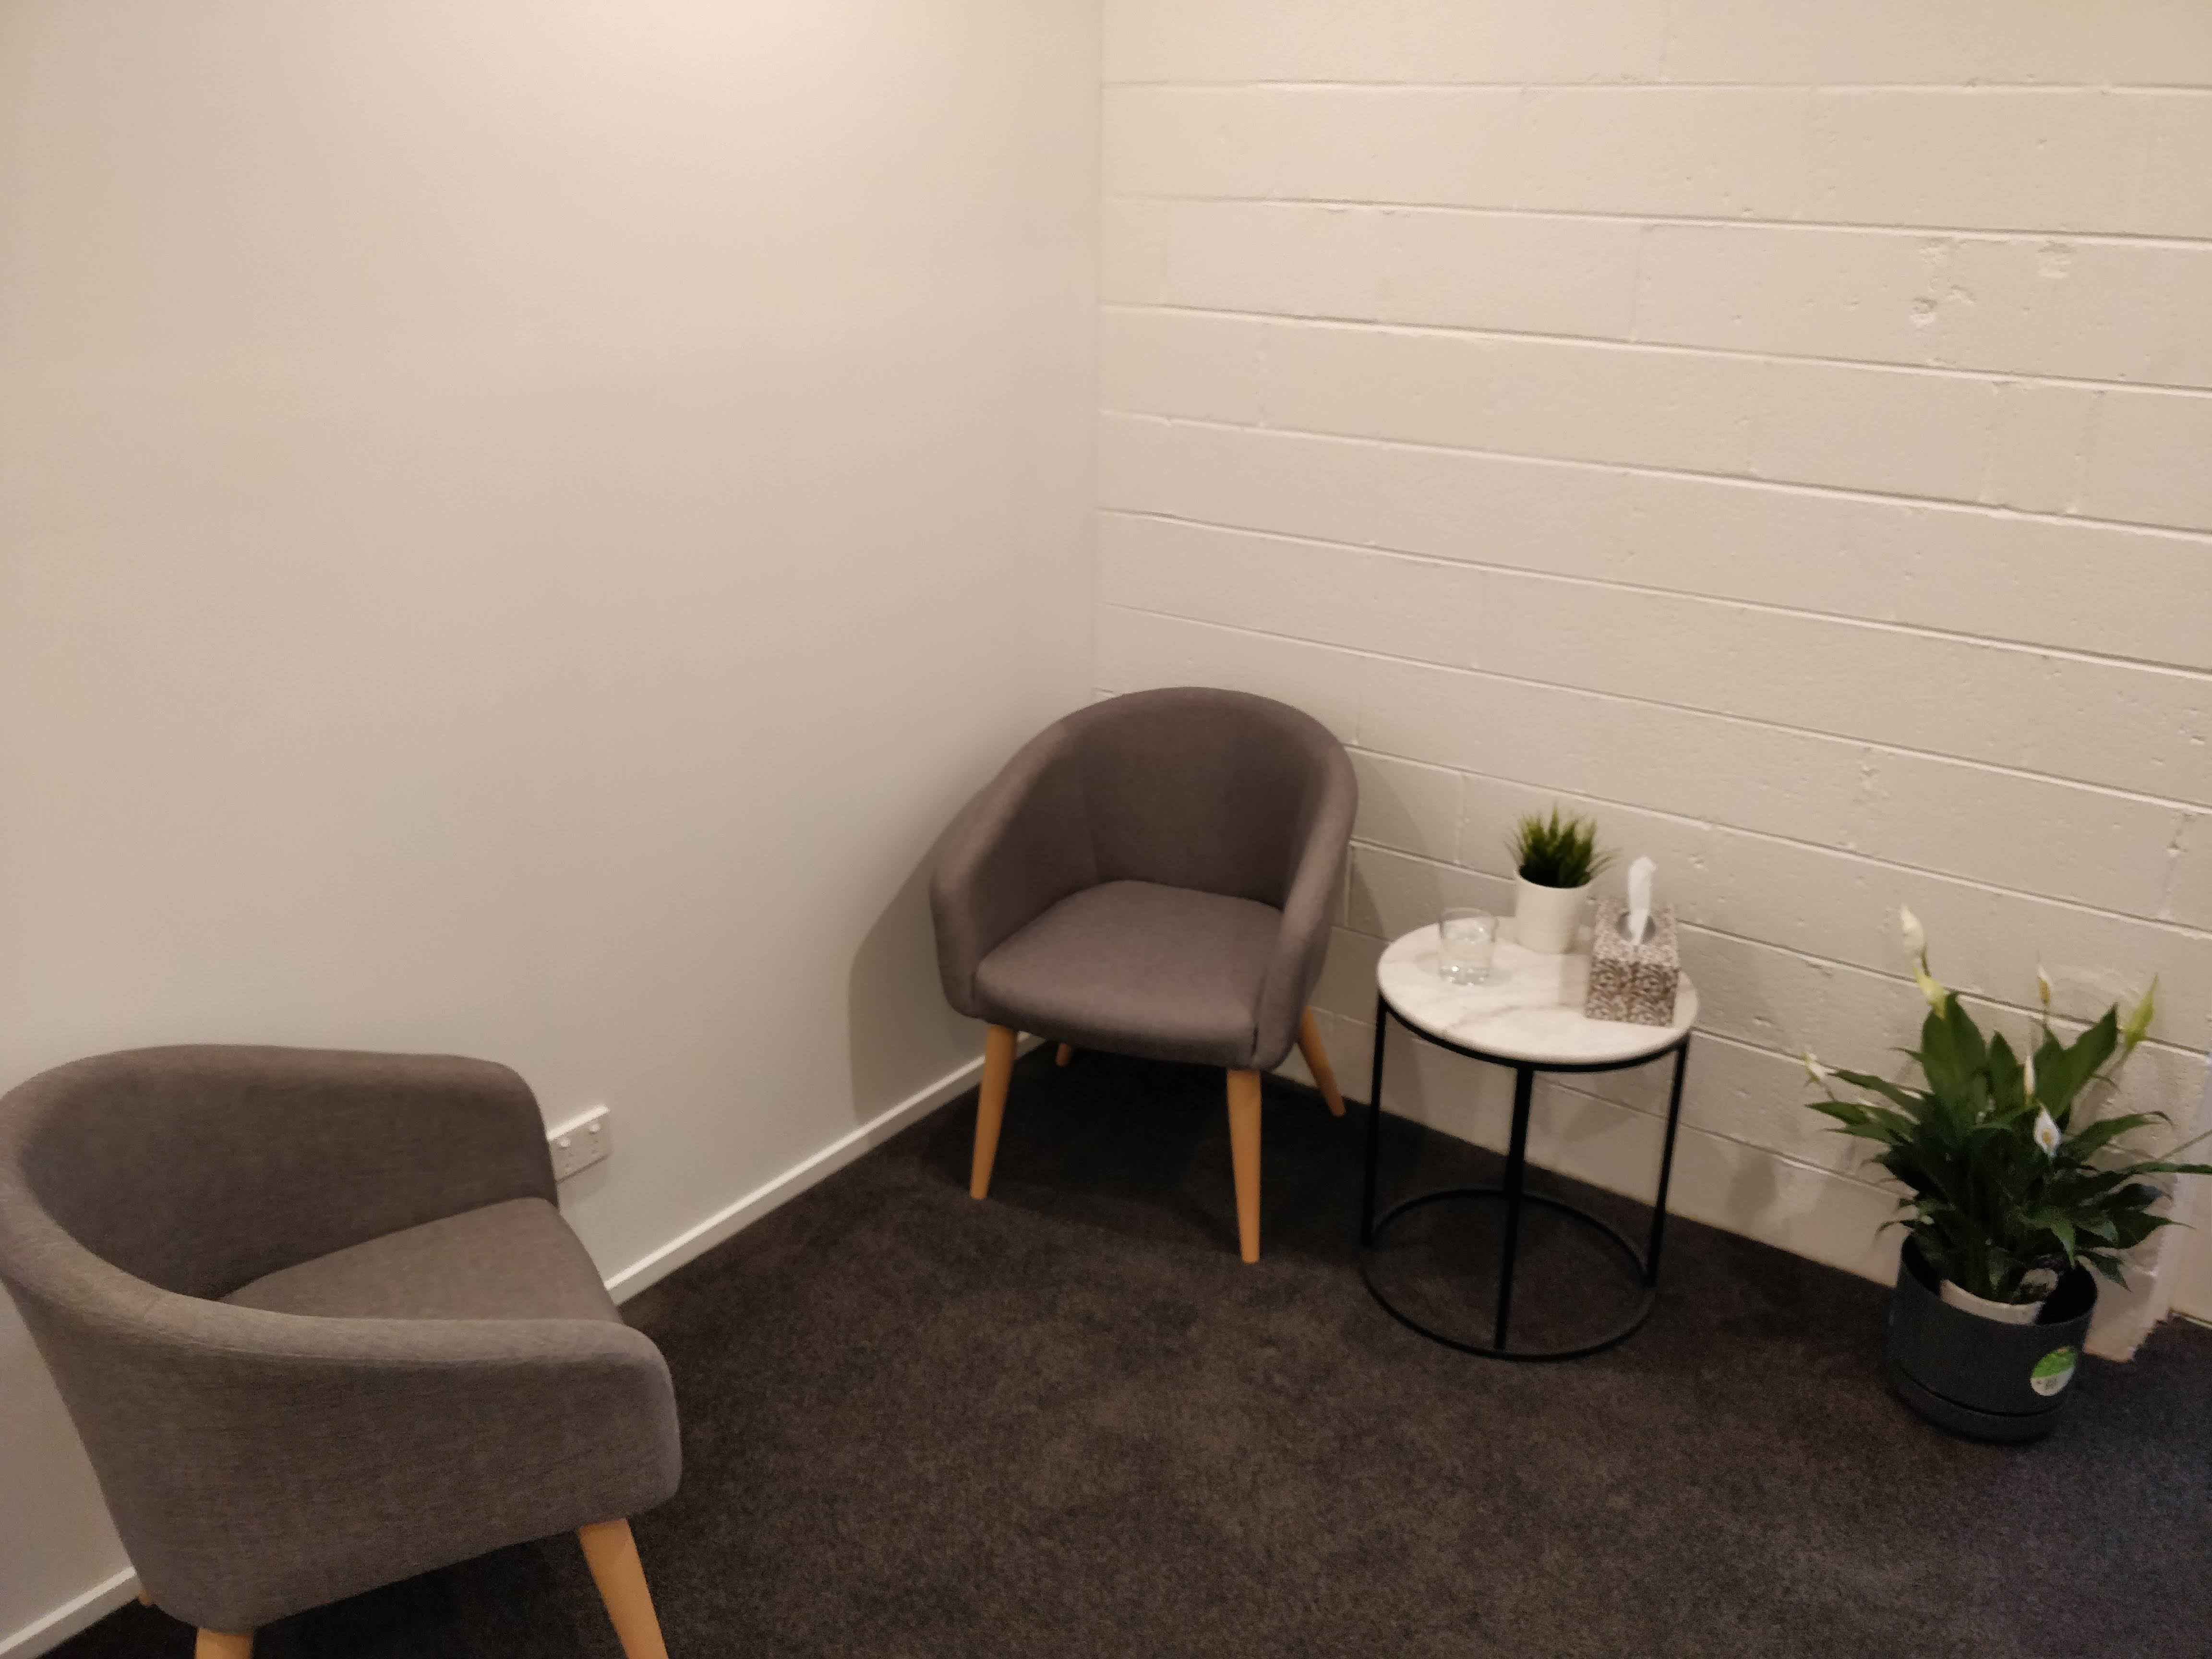 Counselling Rooms For Hire Treatment Room For Rent